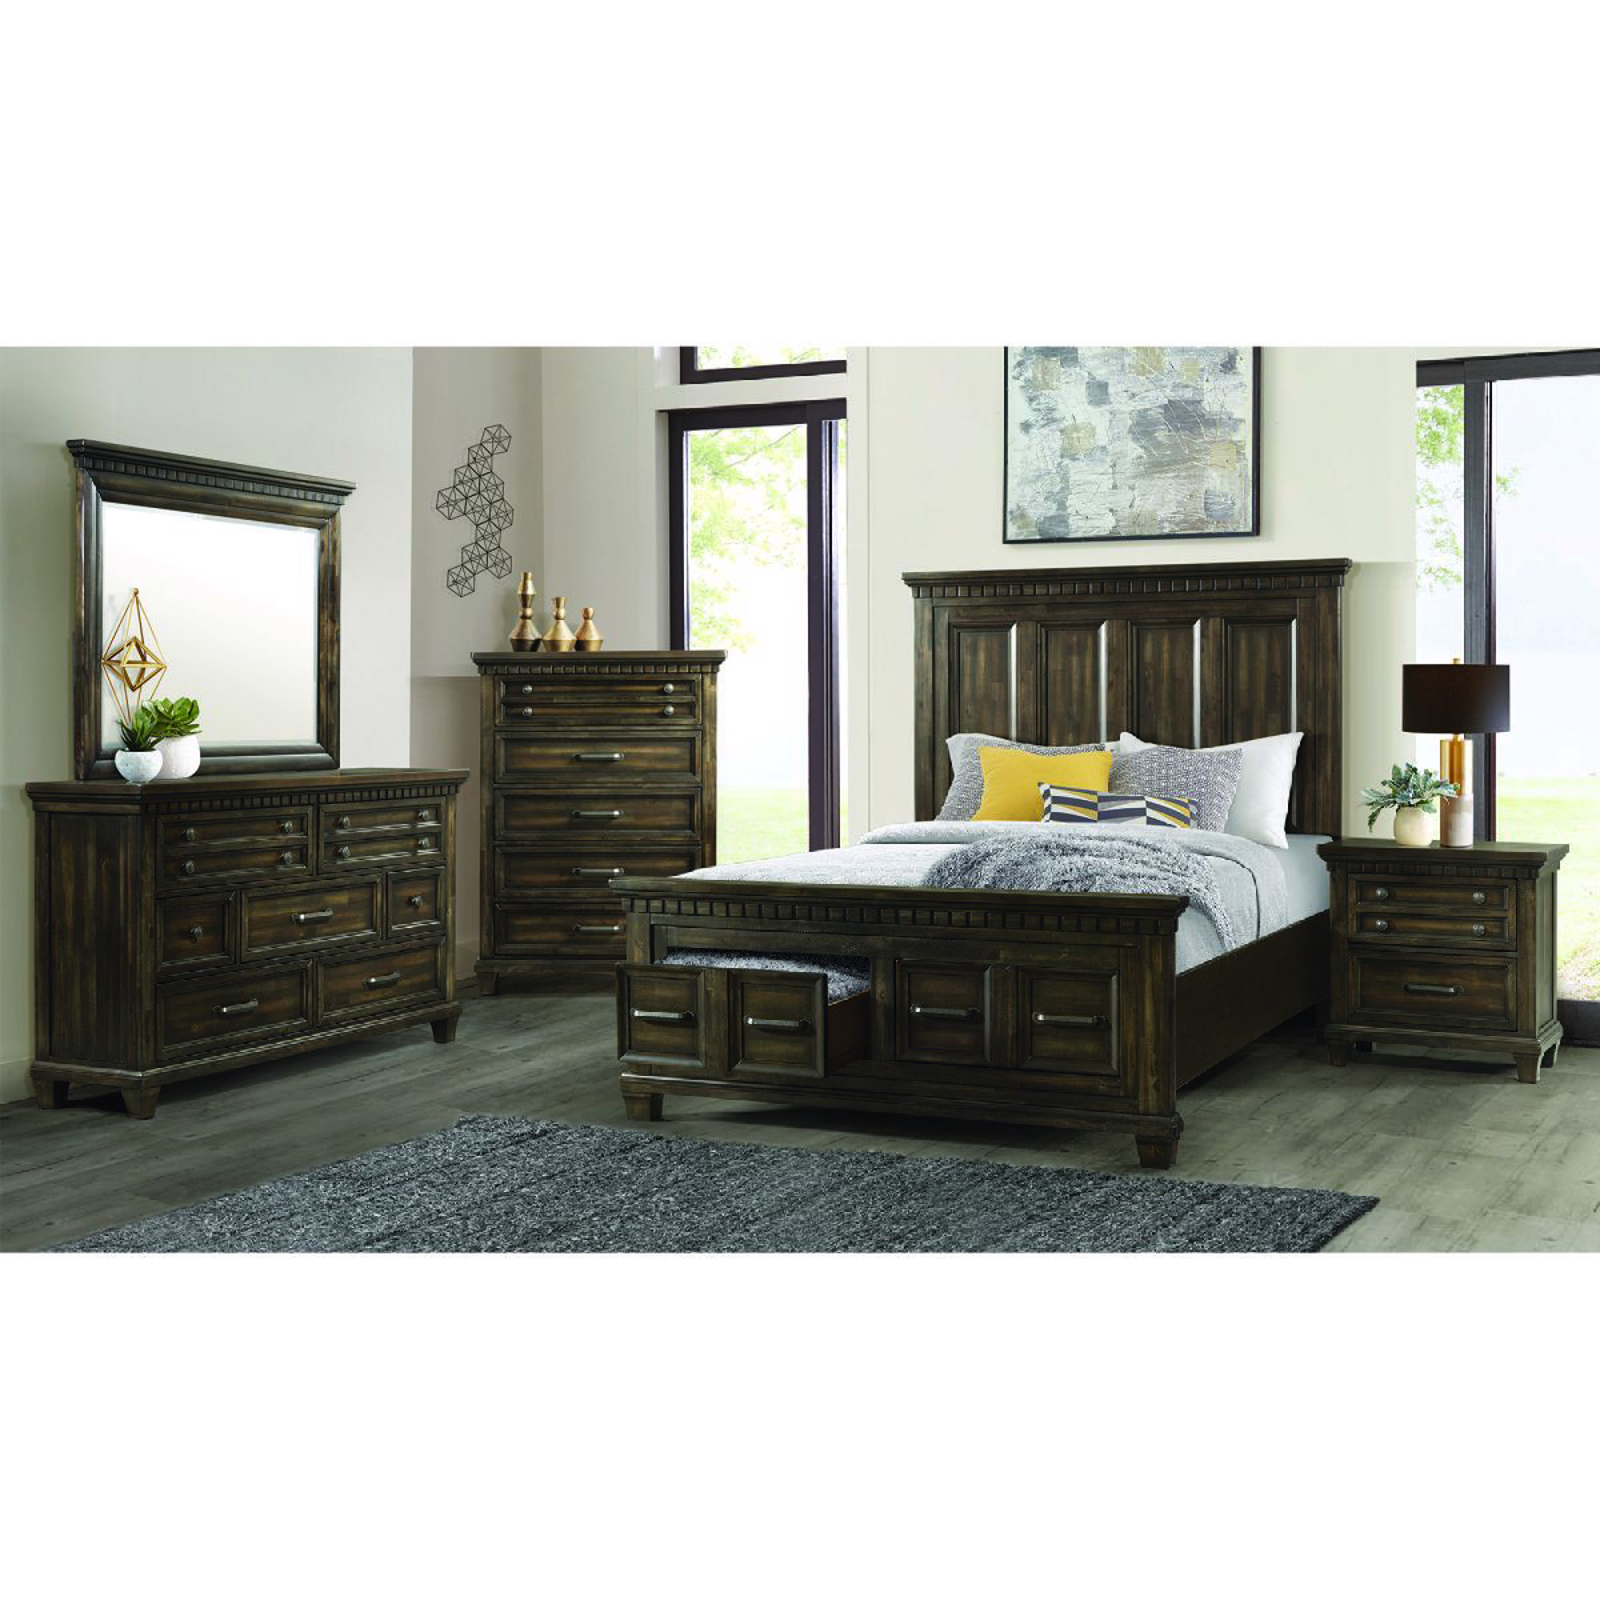 Picture of McCabe 5 Piece Queen Bedroom Group